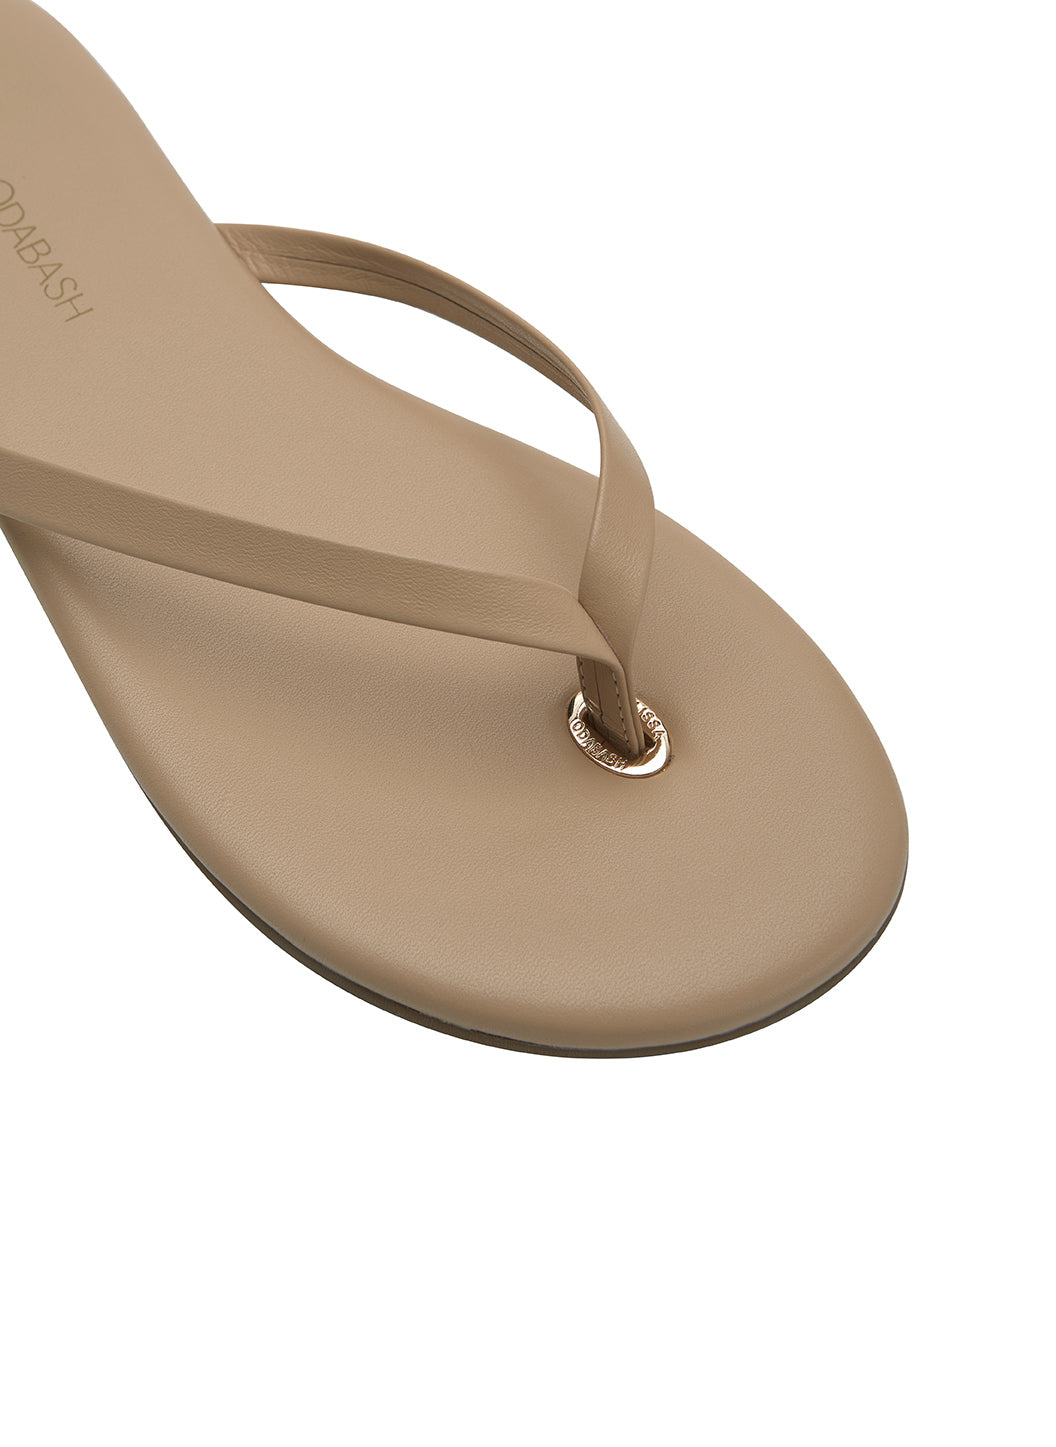 Leather Flip Flops Nude - Melissa Odabash Leather Flip Flops